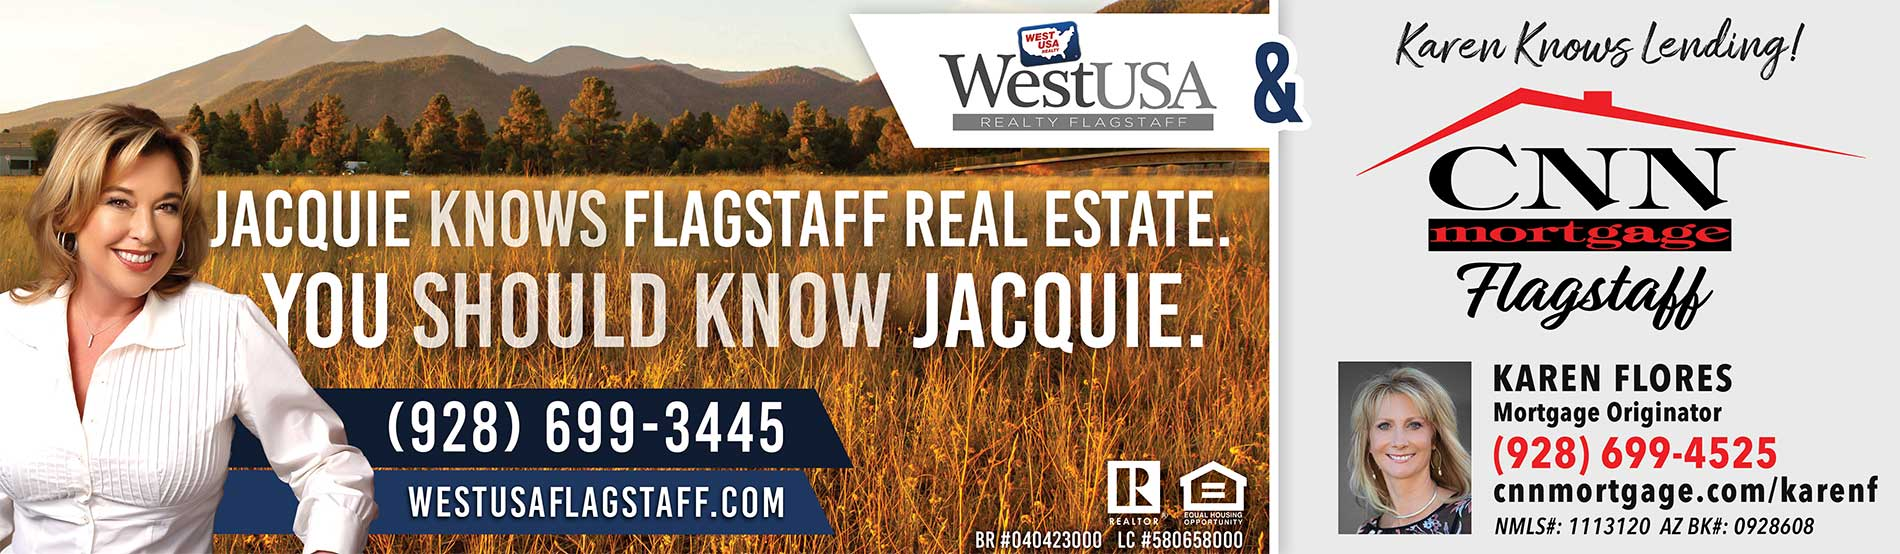 West USA Flagstaff Jacquie Kellogg Realtor